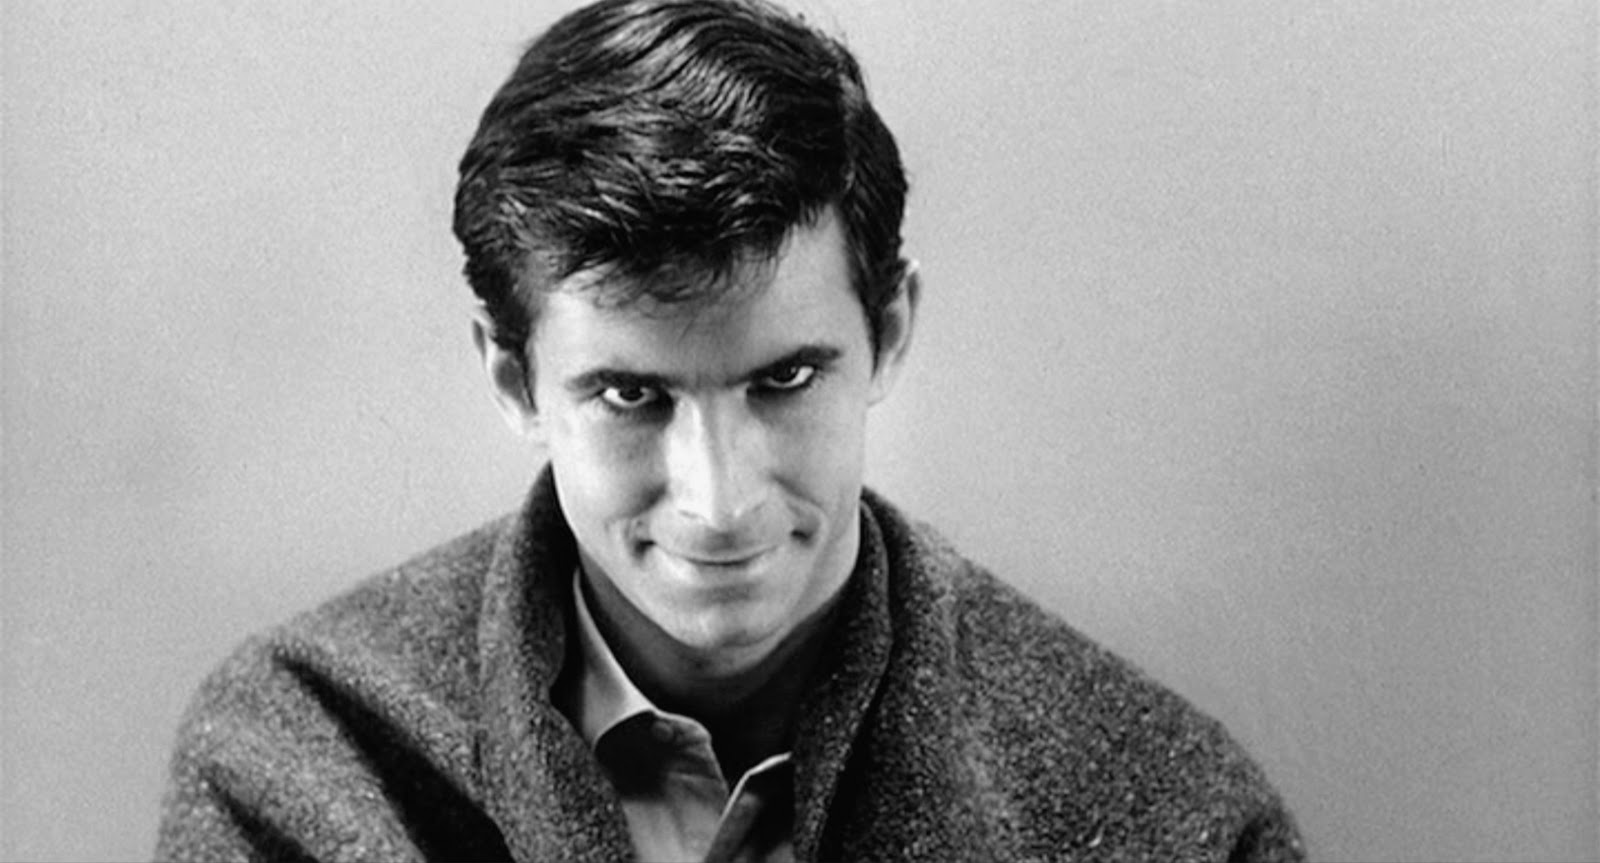 psycho-anthony-perkins-as-norman-bates.j